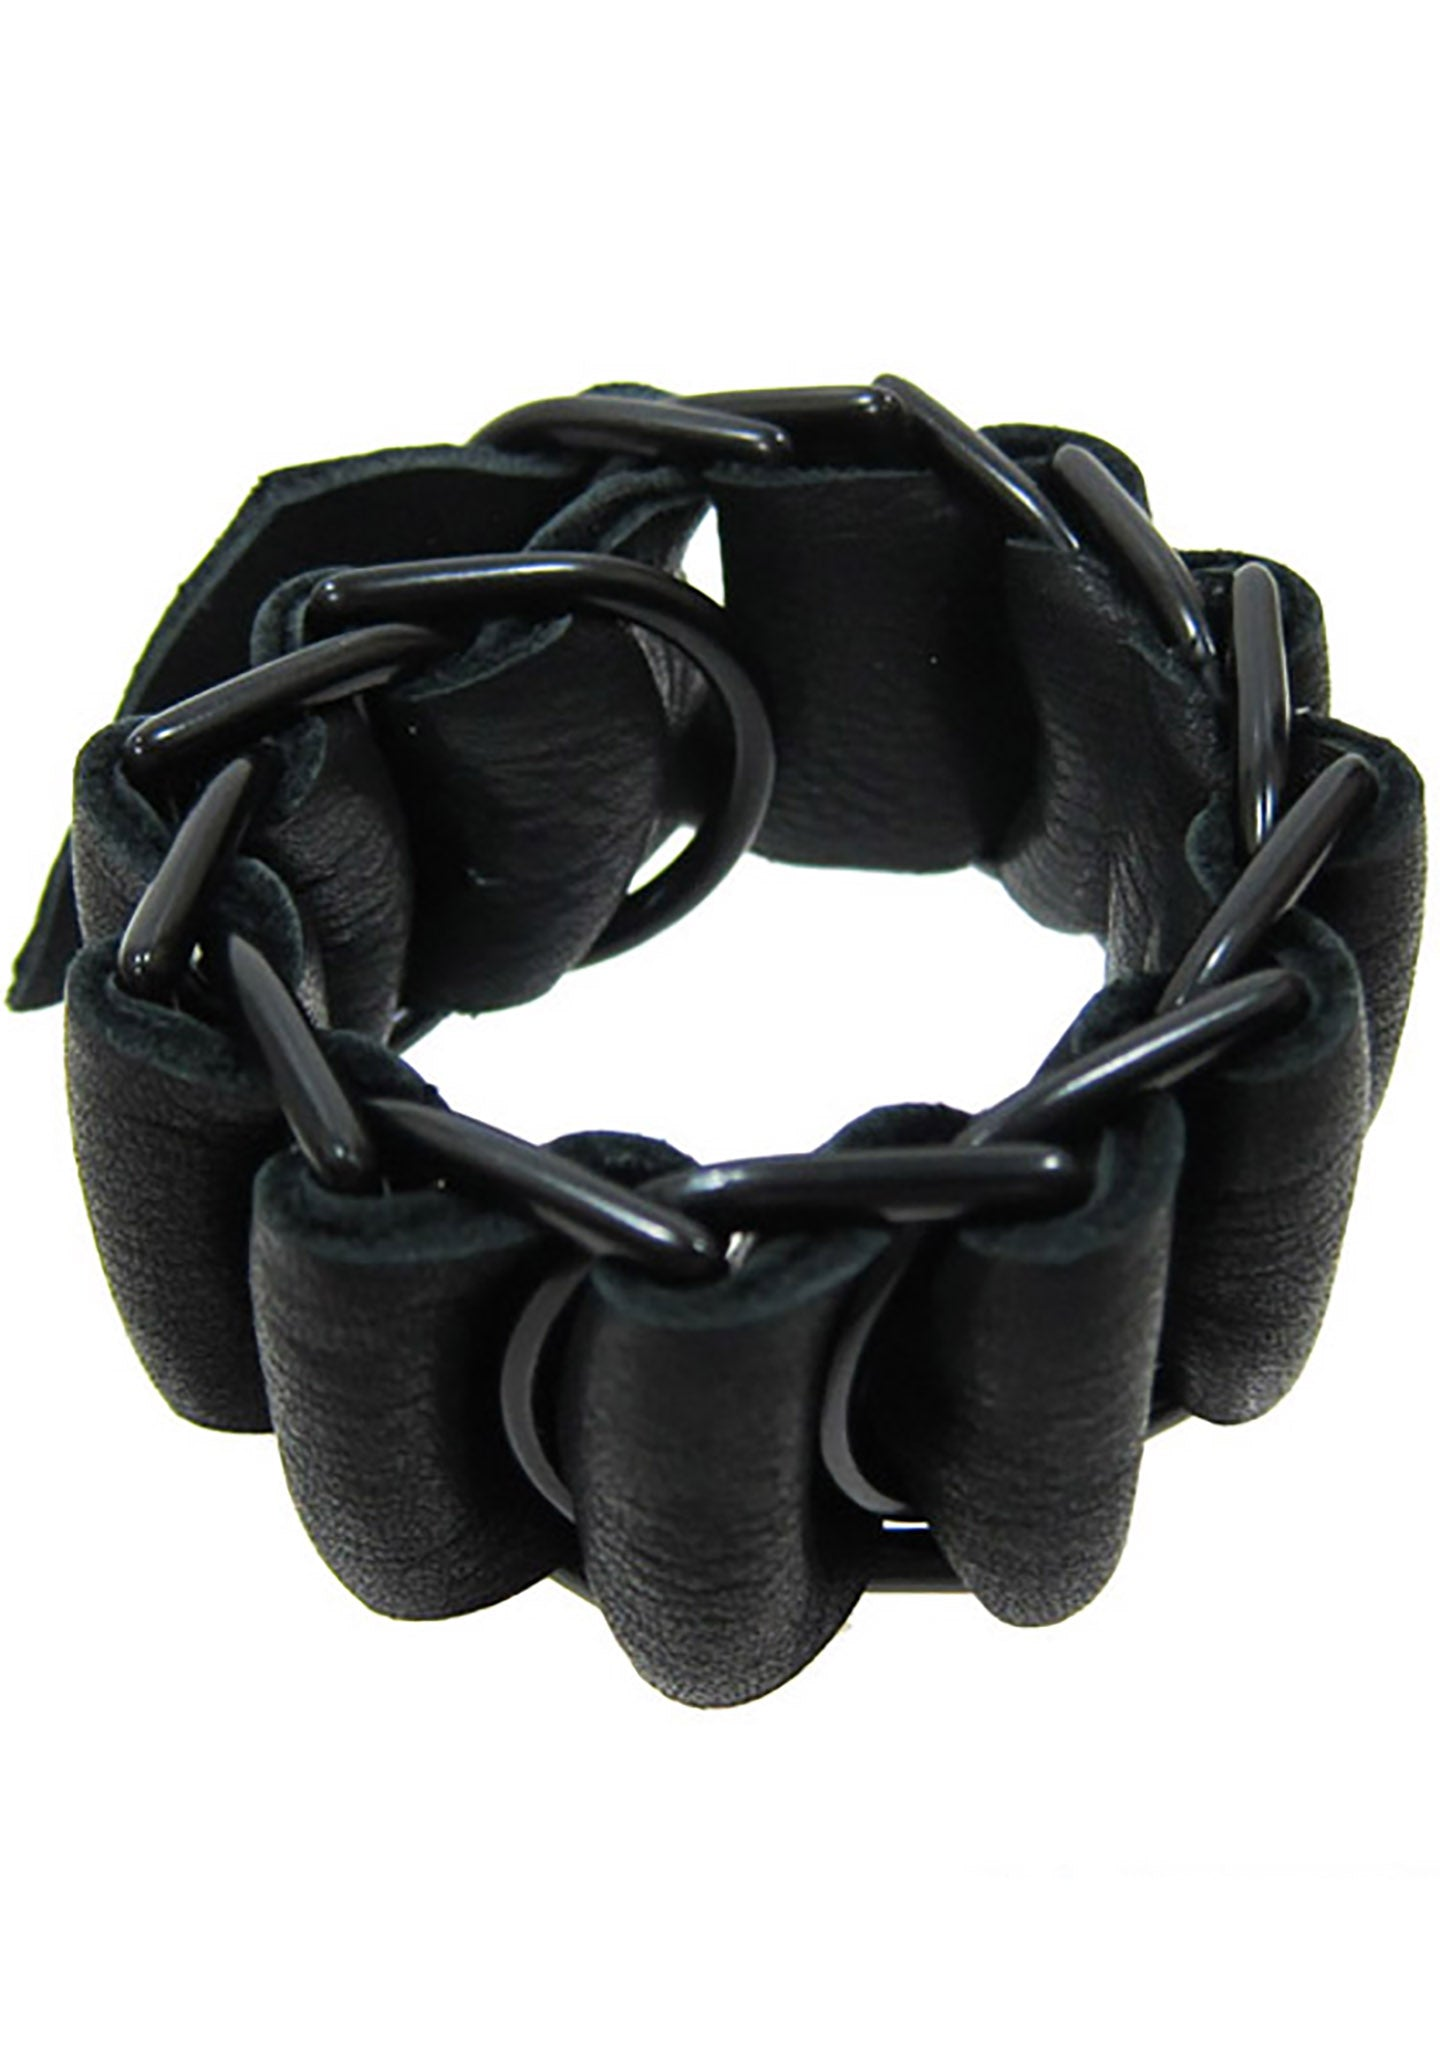 David Galan Large Military Leather Bracelet in Black